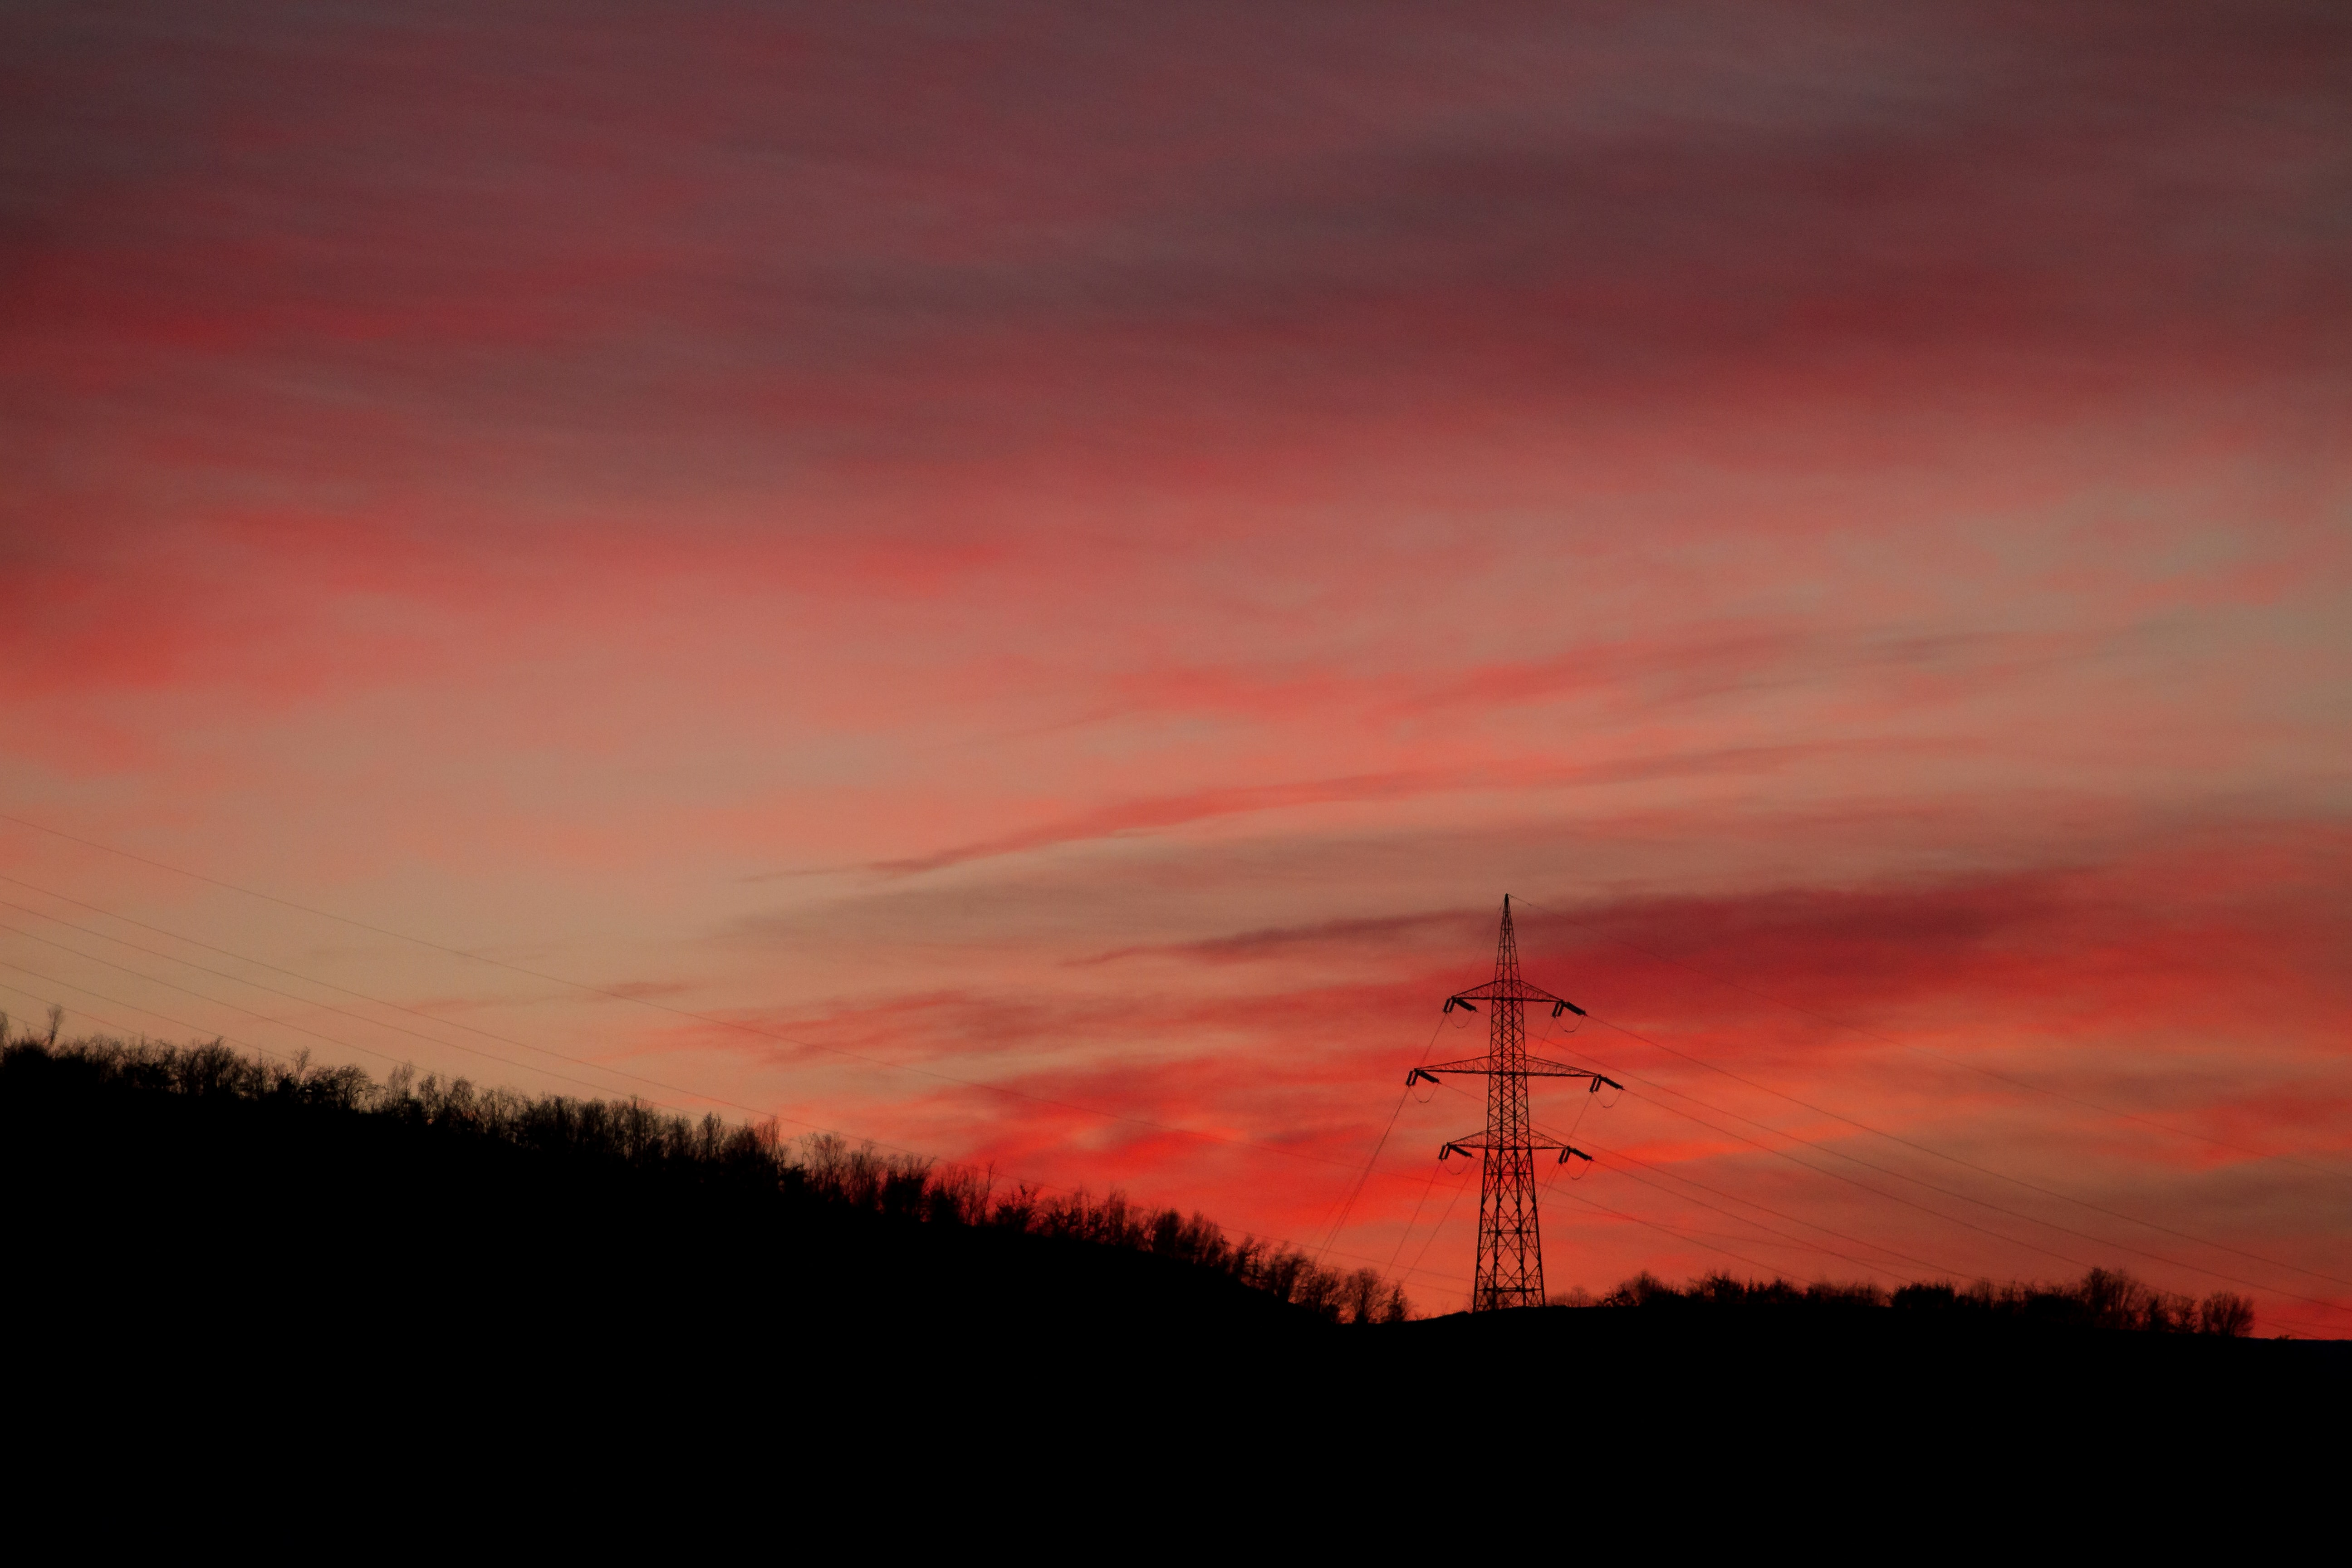 A transmission tower among trees under a red sky at dusk